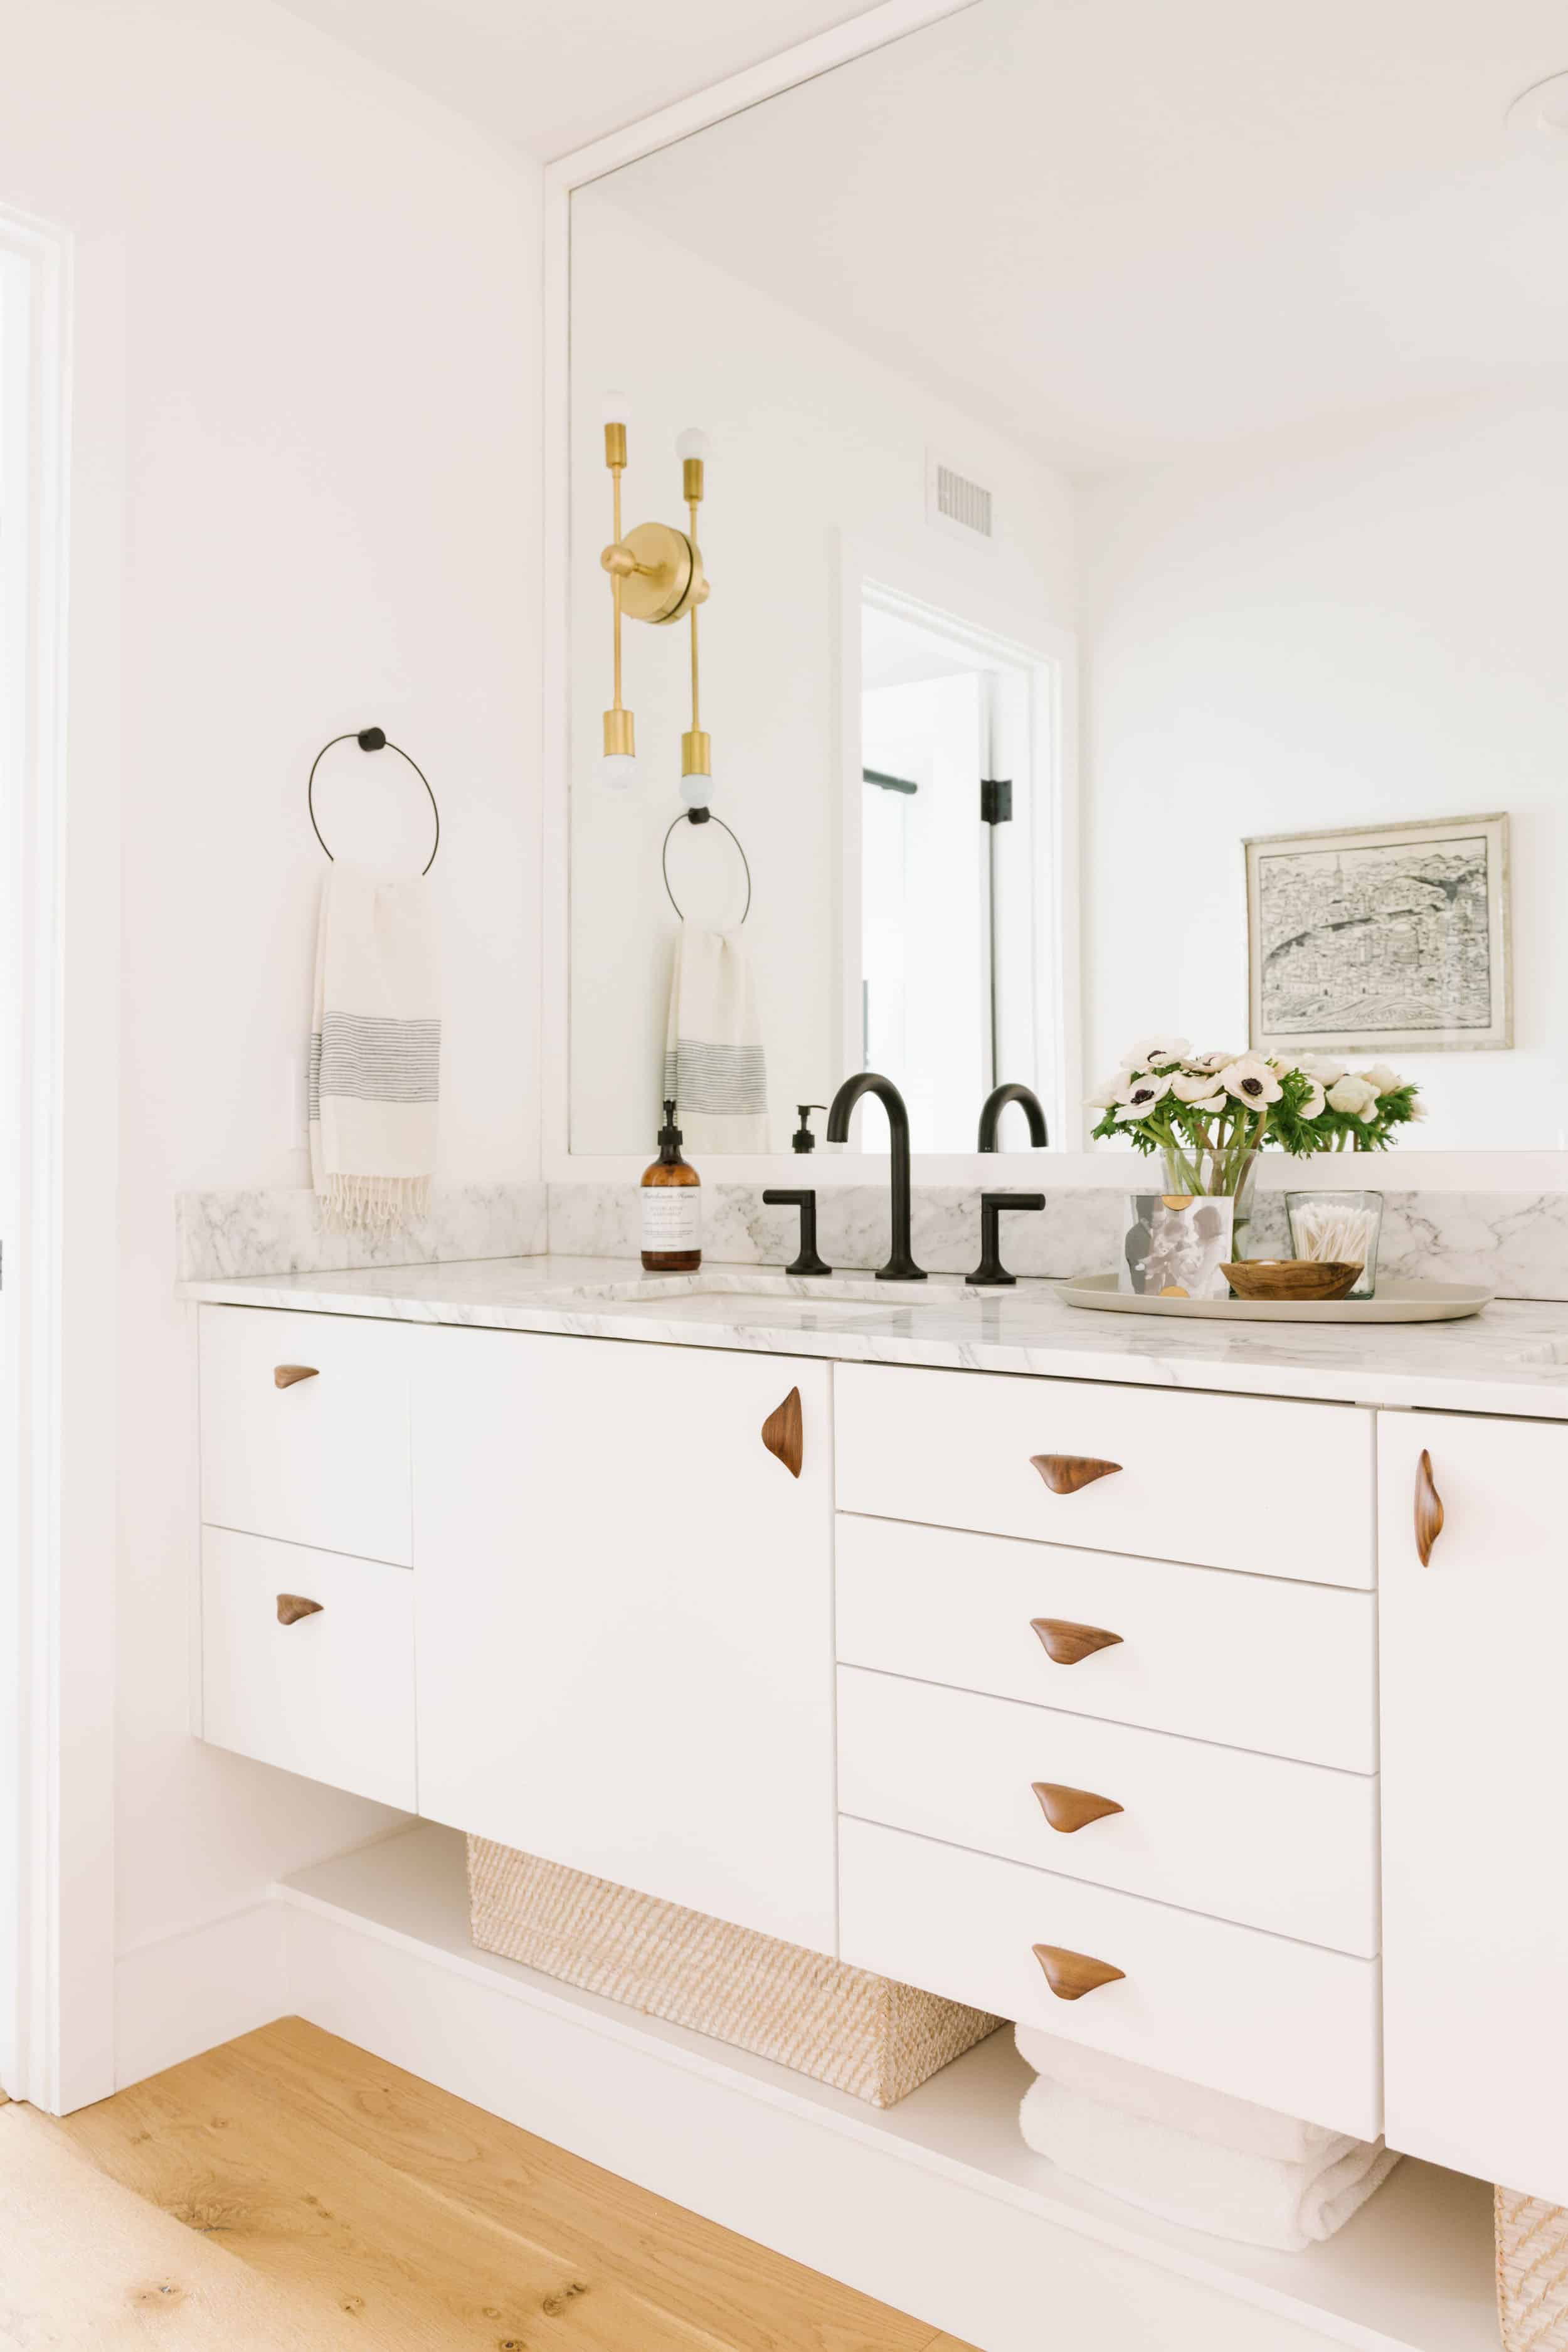 Samantha Gluck Emily Henderson Bathroom Modern Marble Counter